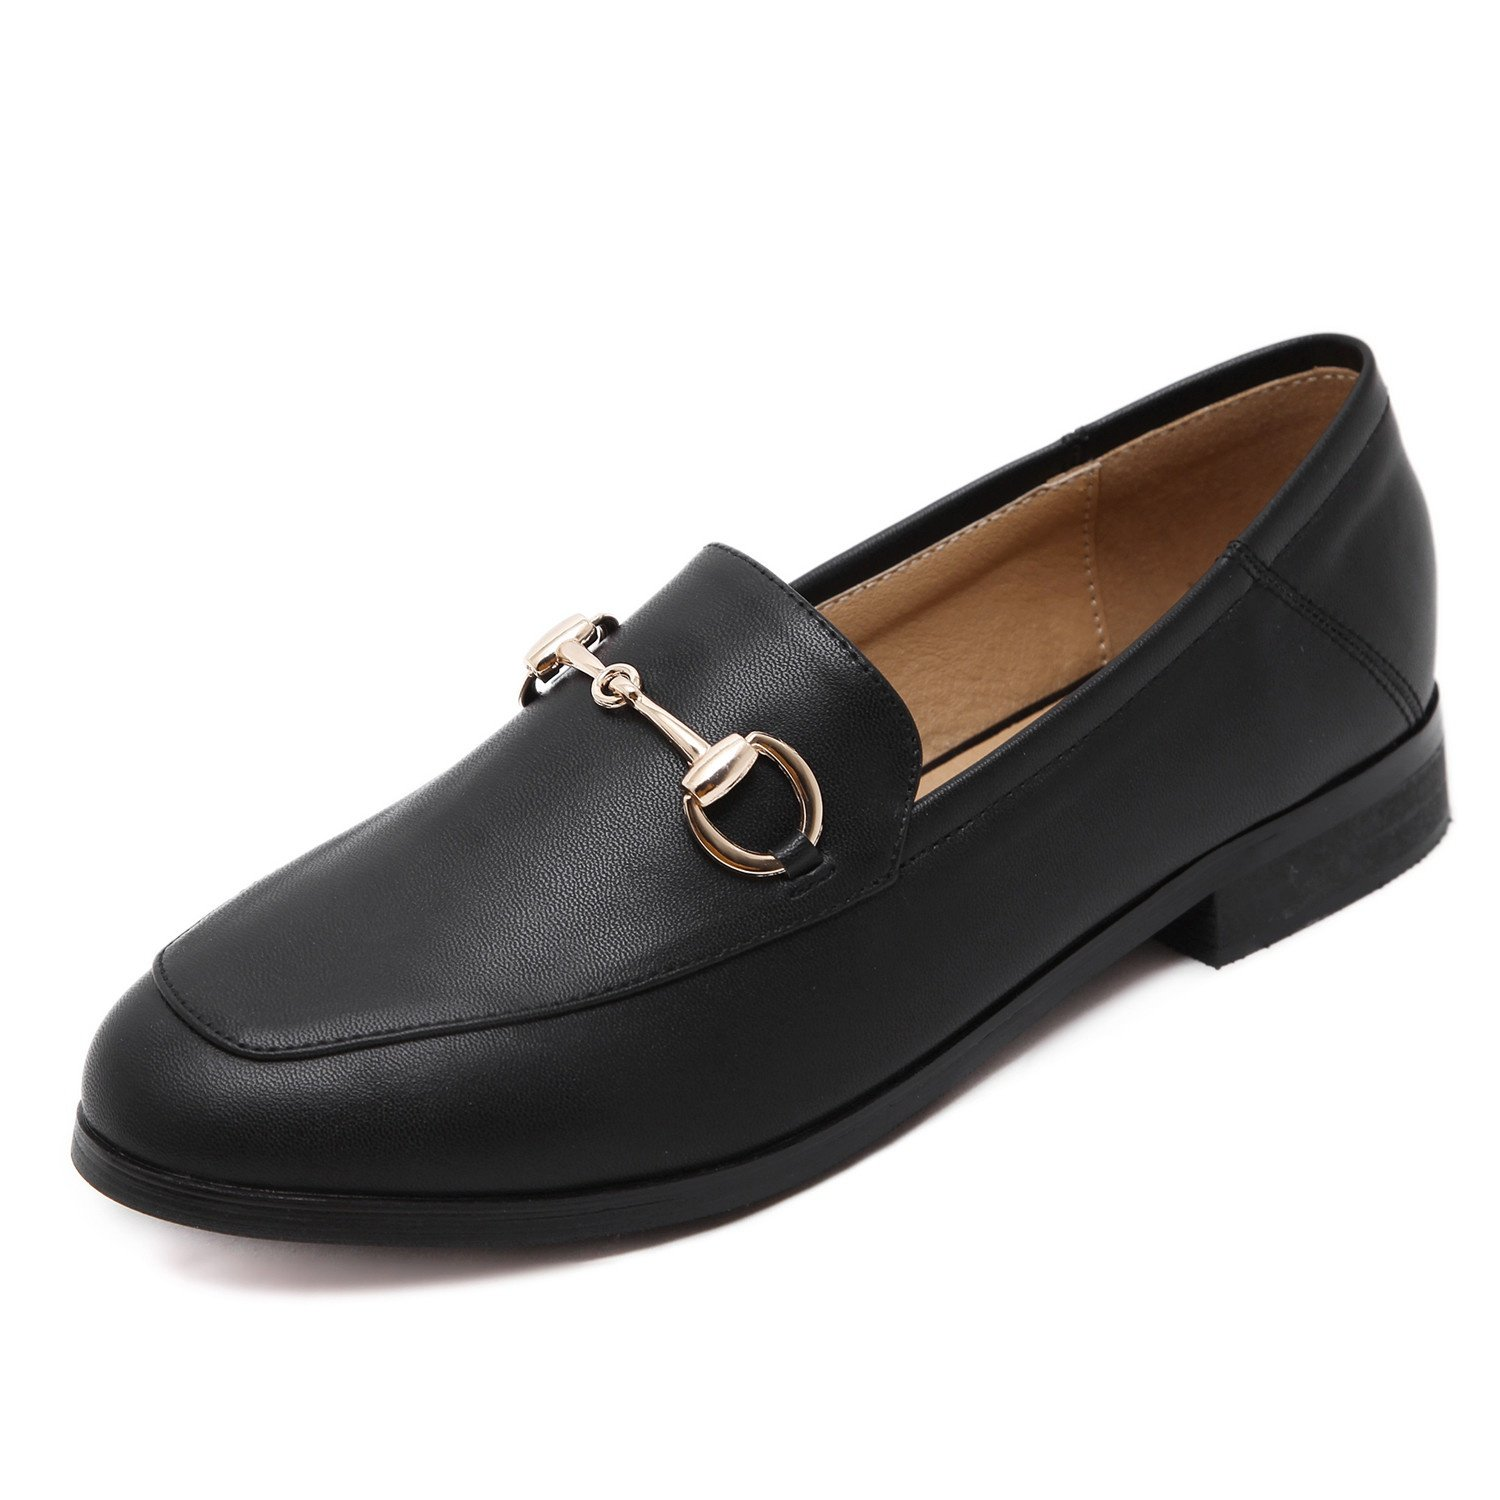 Meeshine Women's Leather Loafer Comfort Buckle Slip On Shoes(8 B(M) US,Black)